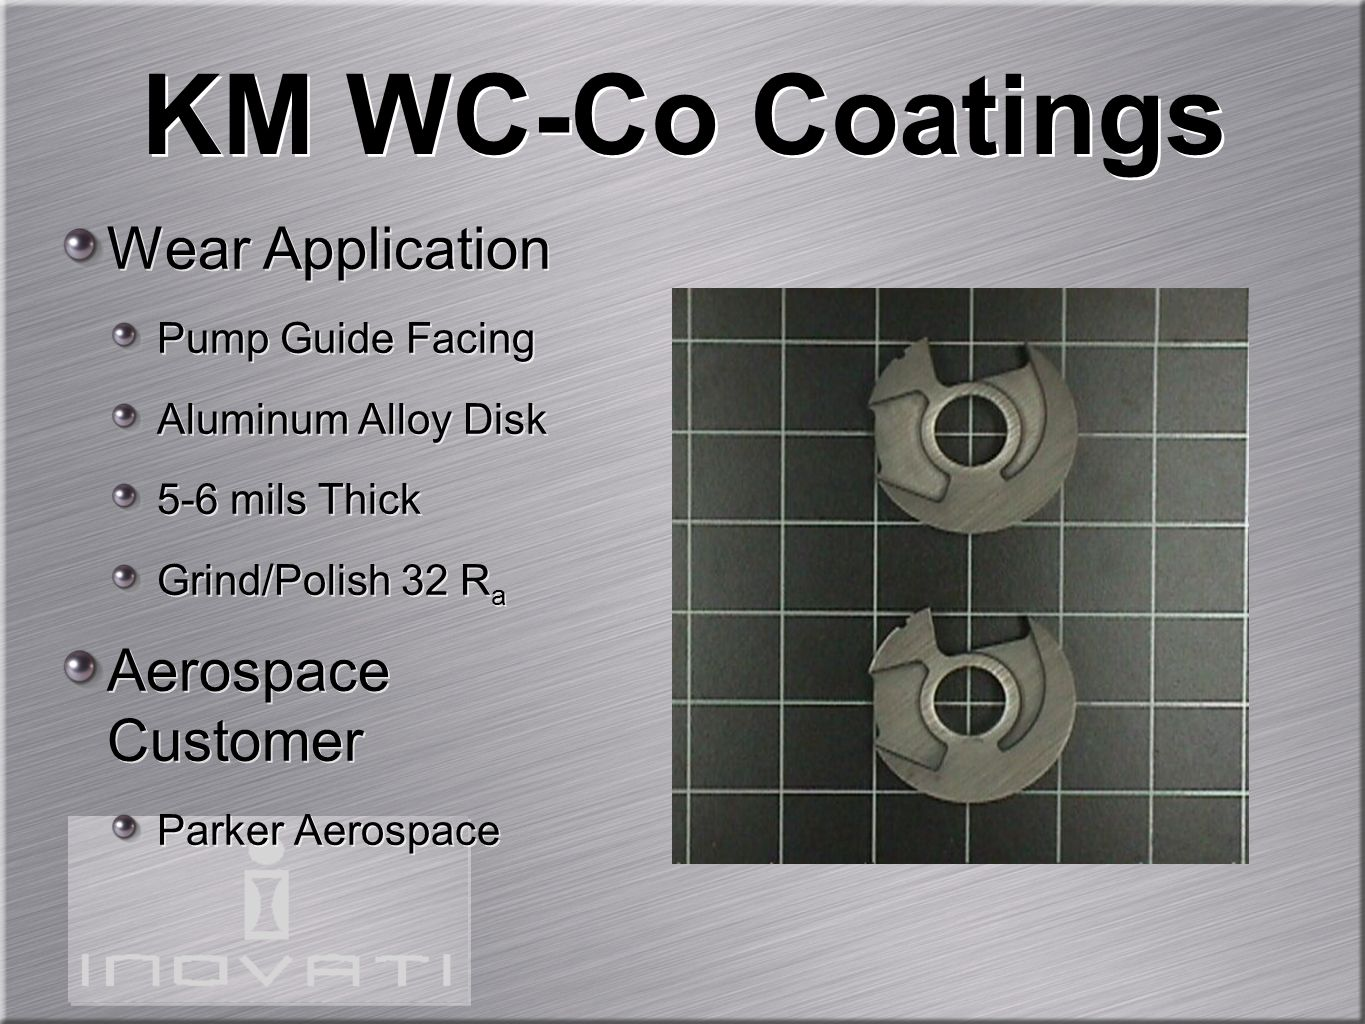 KM WC-Co Coatings Wear Application Aerospace Customer